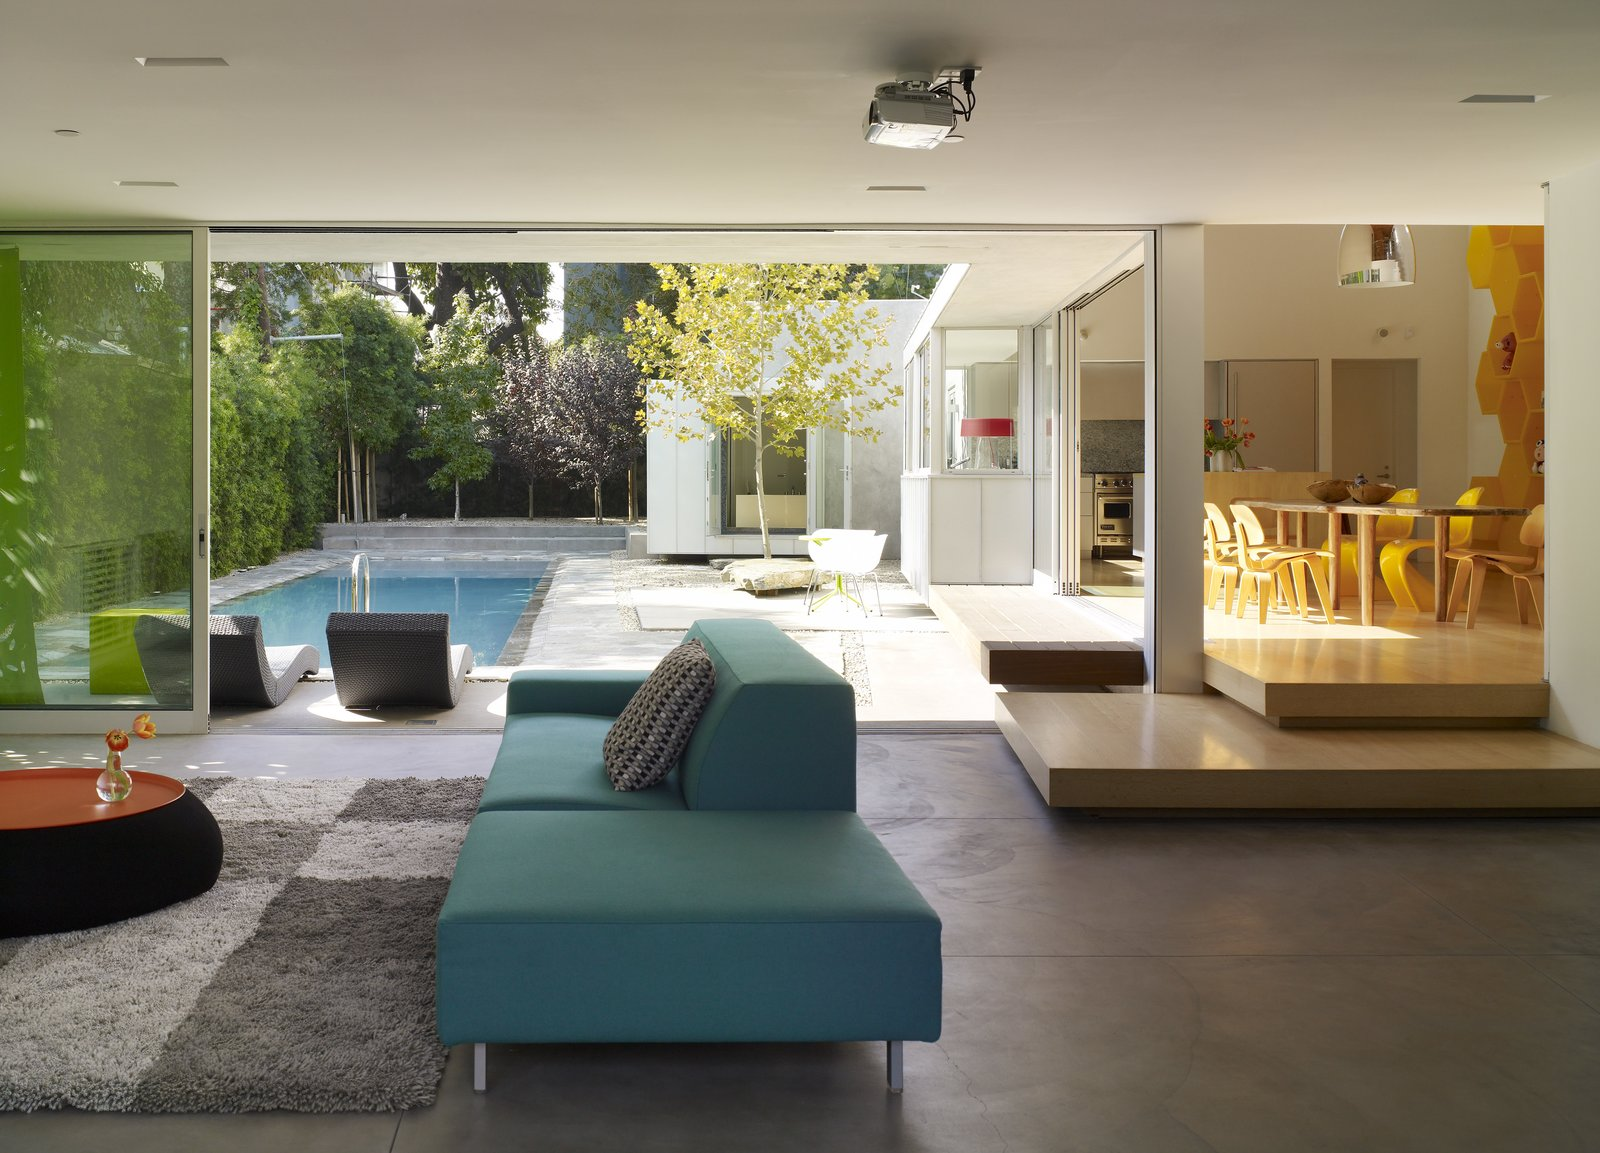 Living Room, Sofa, and Concrete Floor  Photo 2 of 9 in Tobey Maguire Snatches Up Googleplex Architect Clive Wilkinson's Los Angeles Home For $3.4M